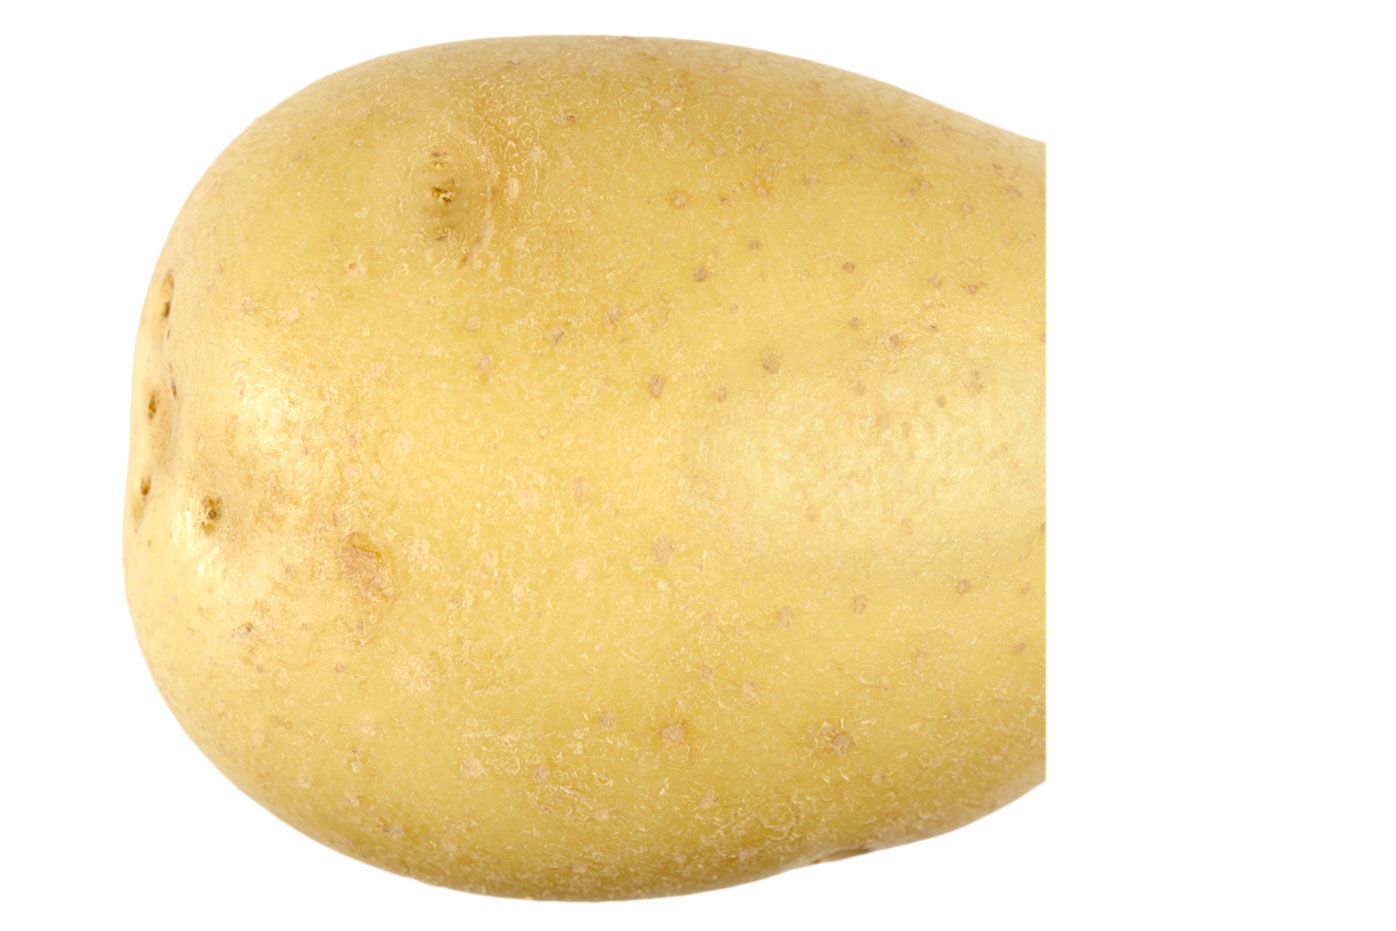 4/5 a small potato is 100 calories